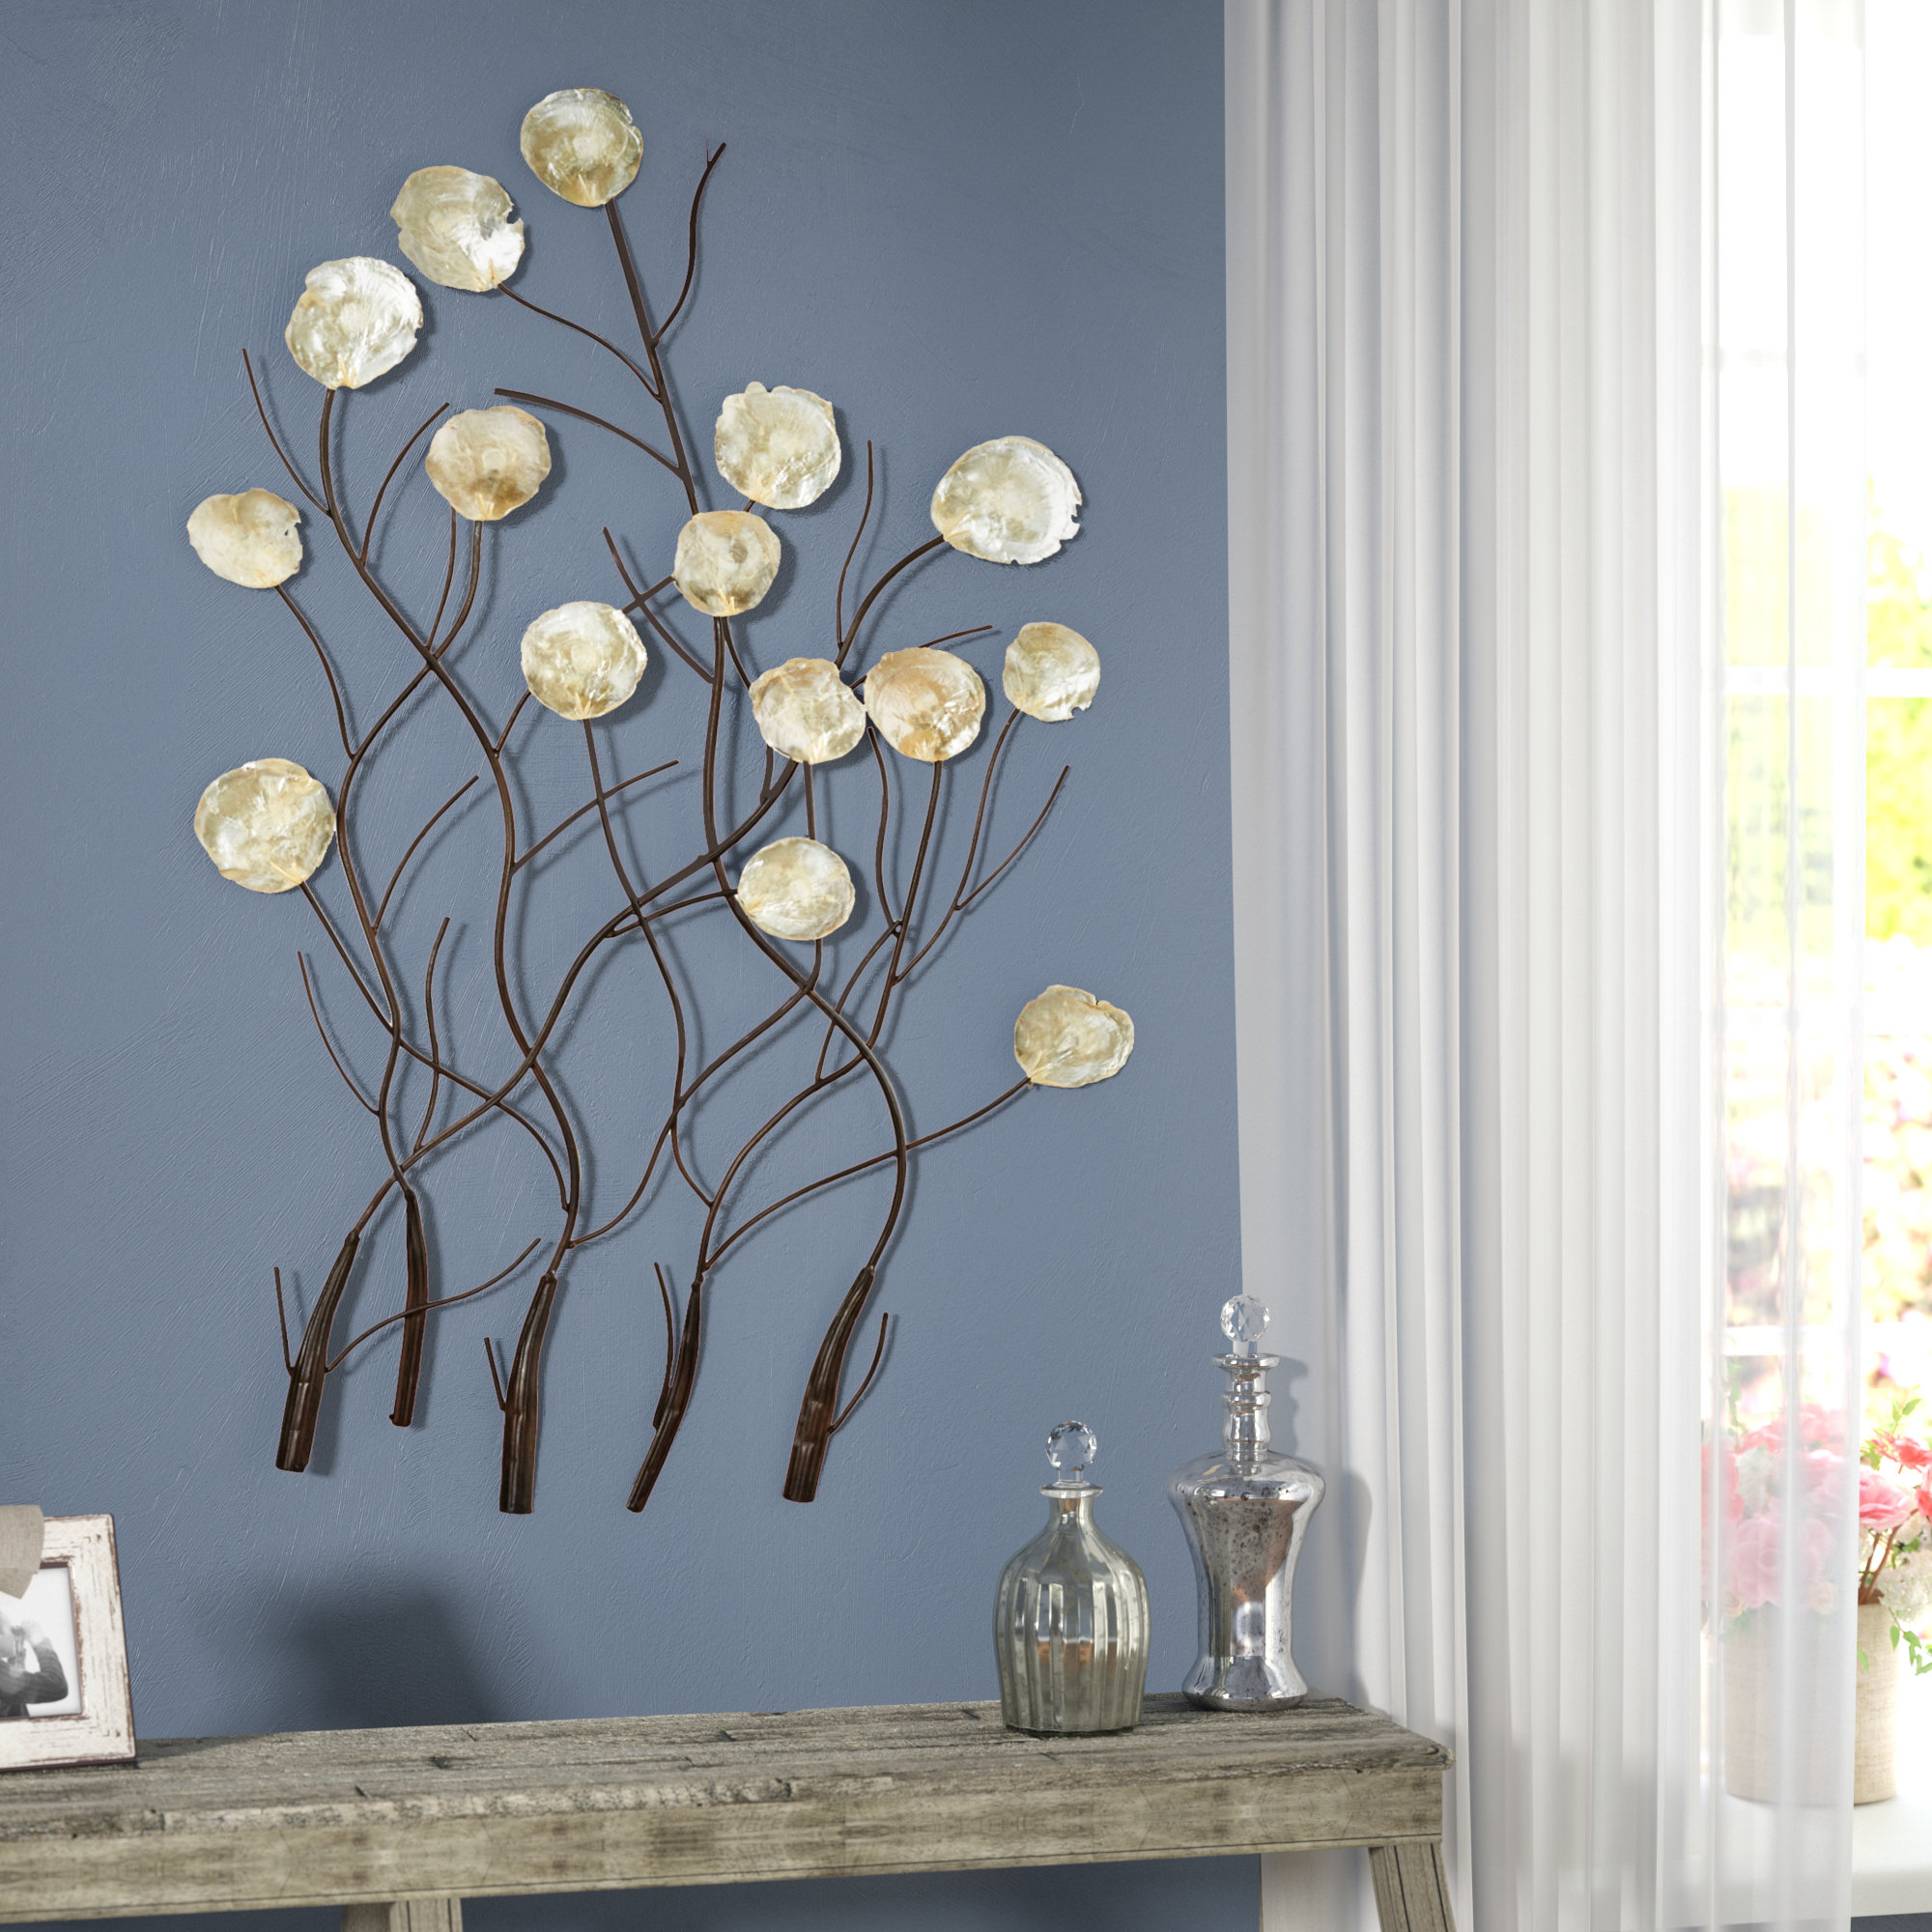 Wayfair Within Most Recent Tree Shell Leaves Sculpture Wall Decor (Gallery 7 of 20)